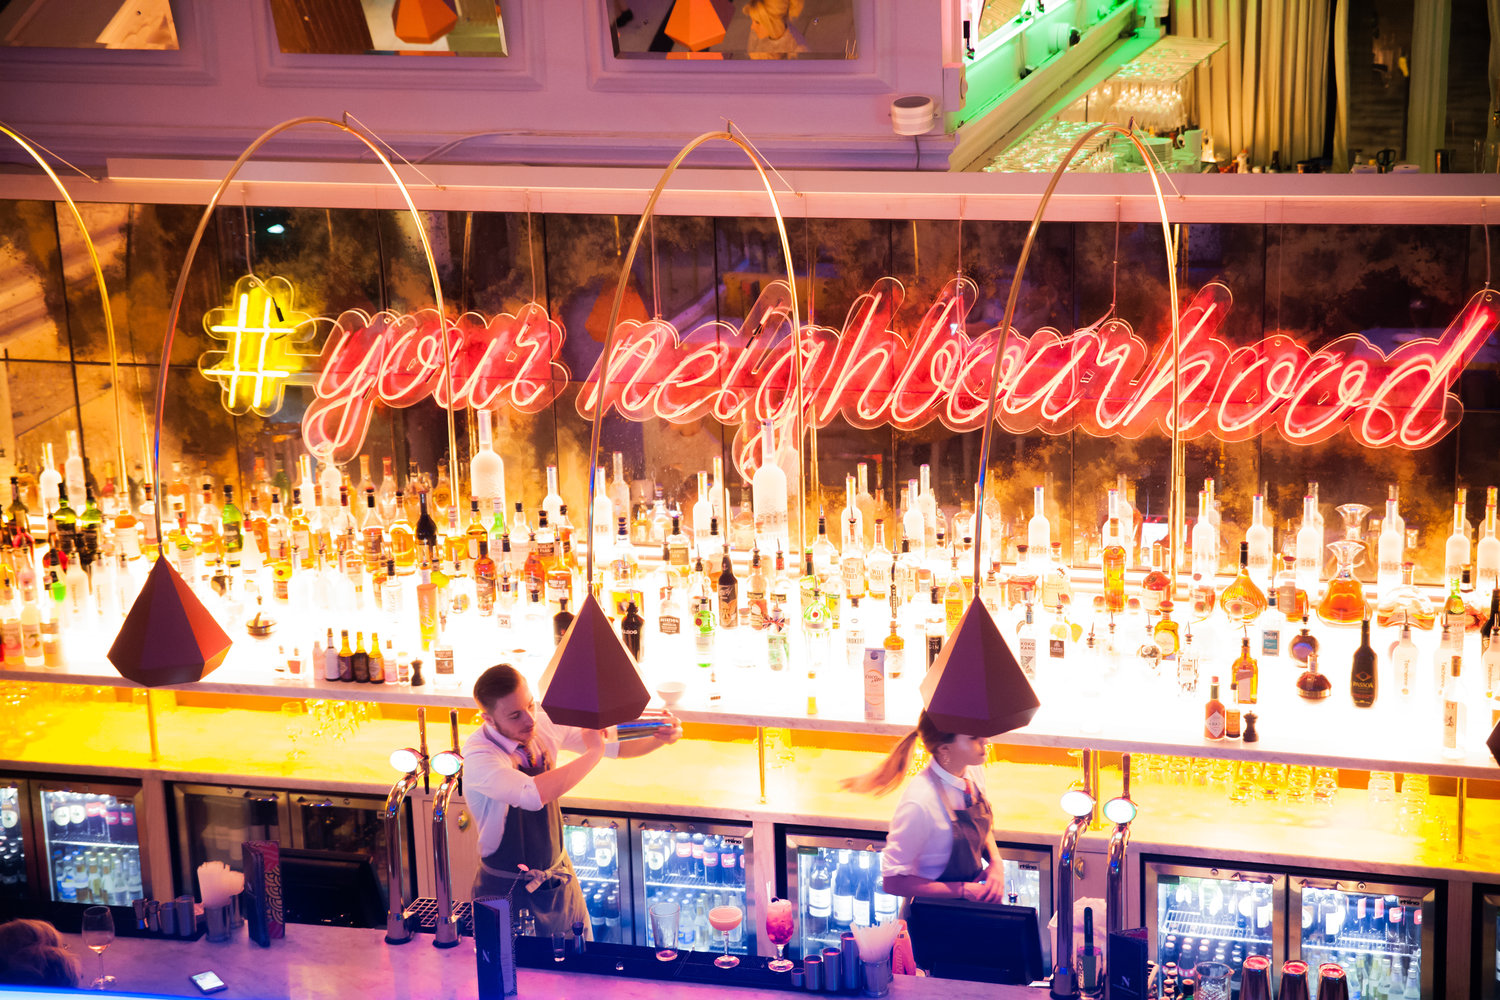 The Neighbourhood - The Neighbourhood offers a variety of authentic dishes, desserts & drinks